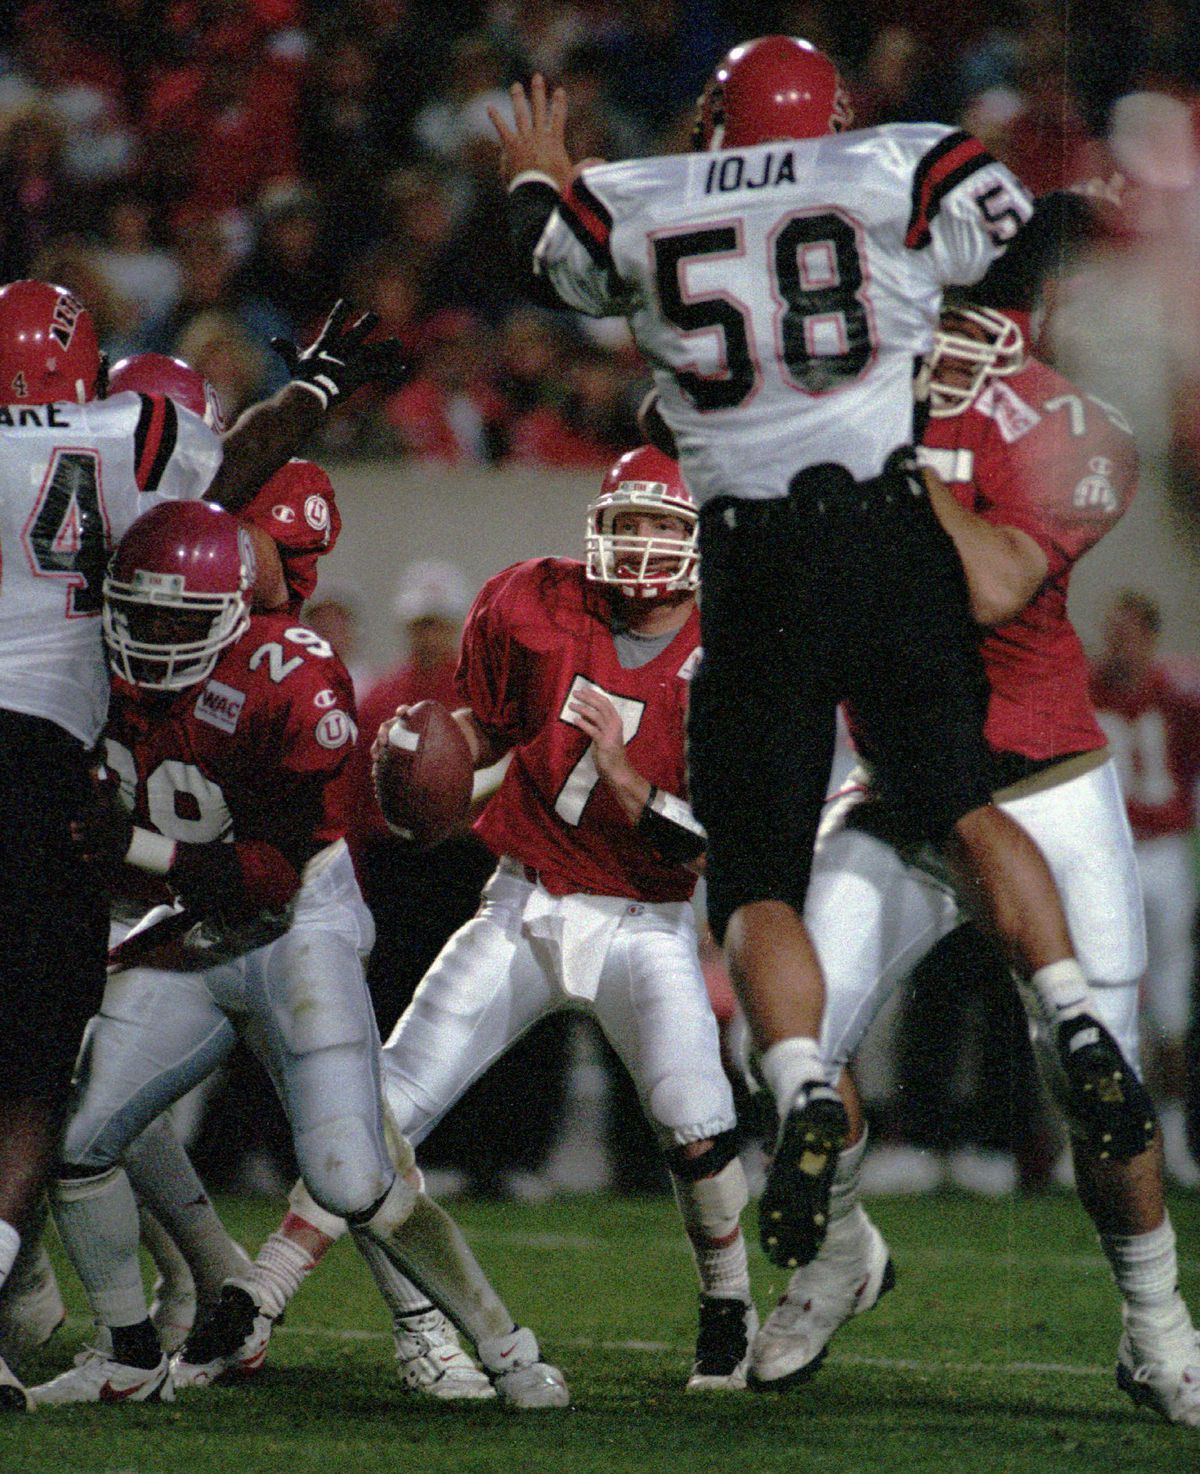 Mike Fouts looks for opening as San diego State players Adrian Ioja (58) and Roger Black defend. ALLRED/photo (Submission date: 10/22/2002)